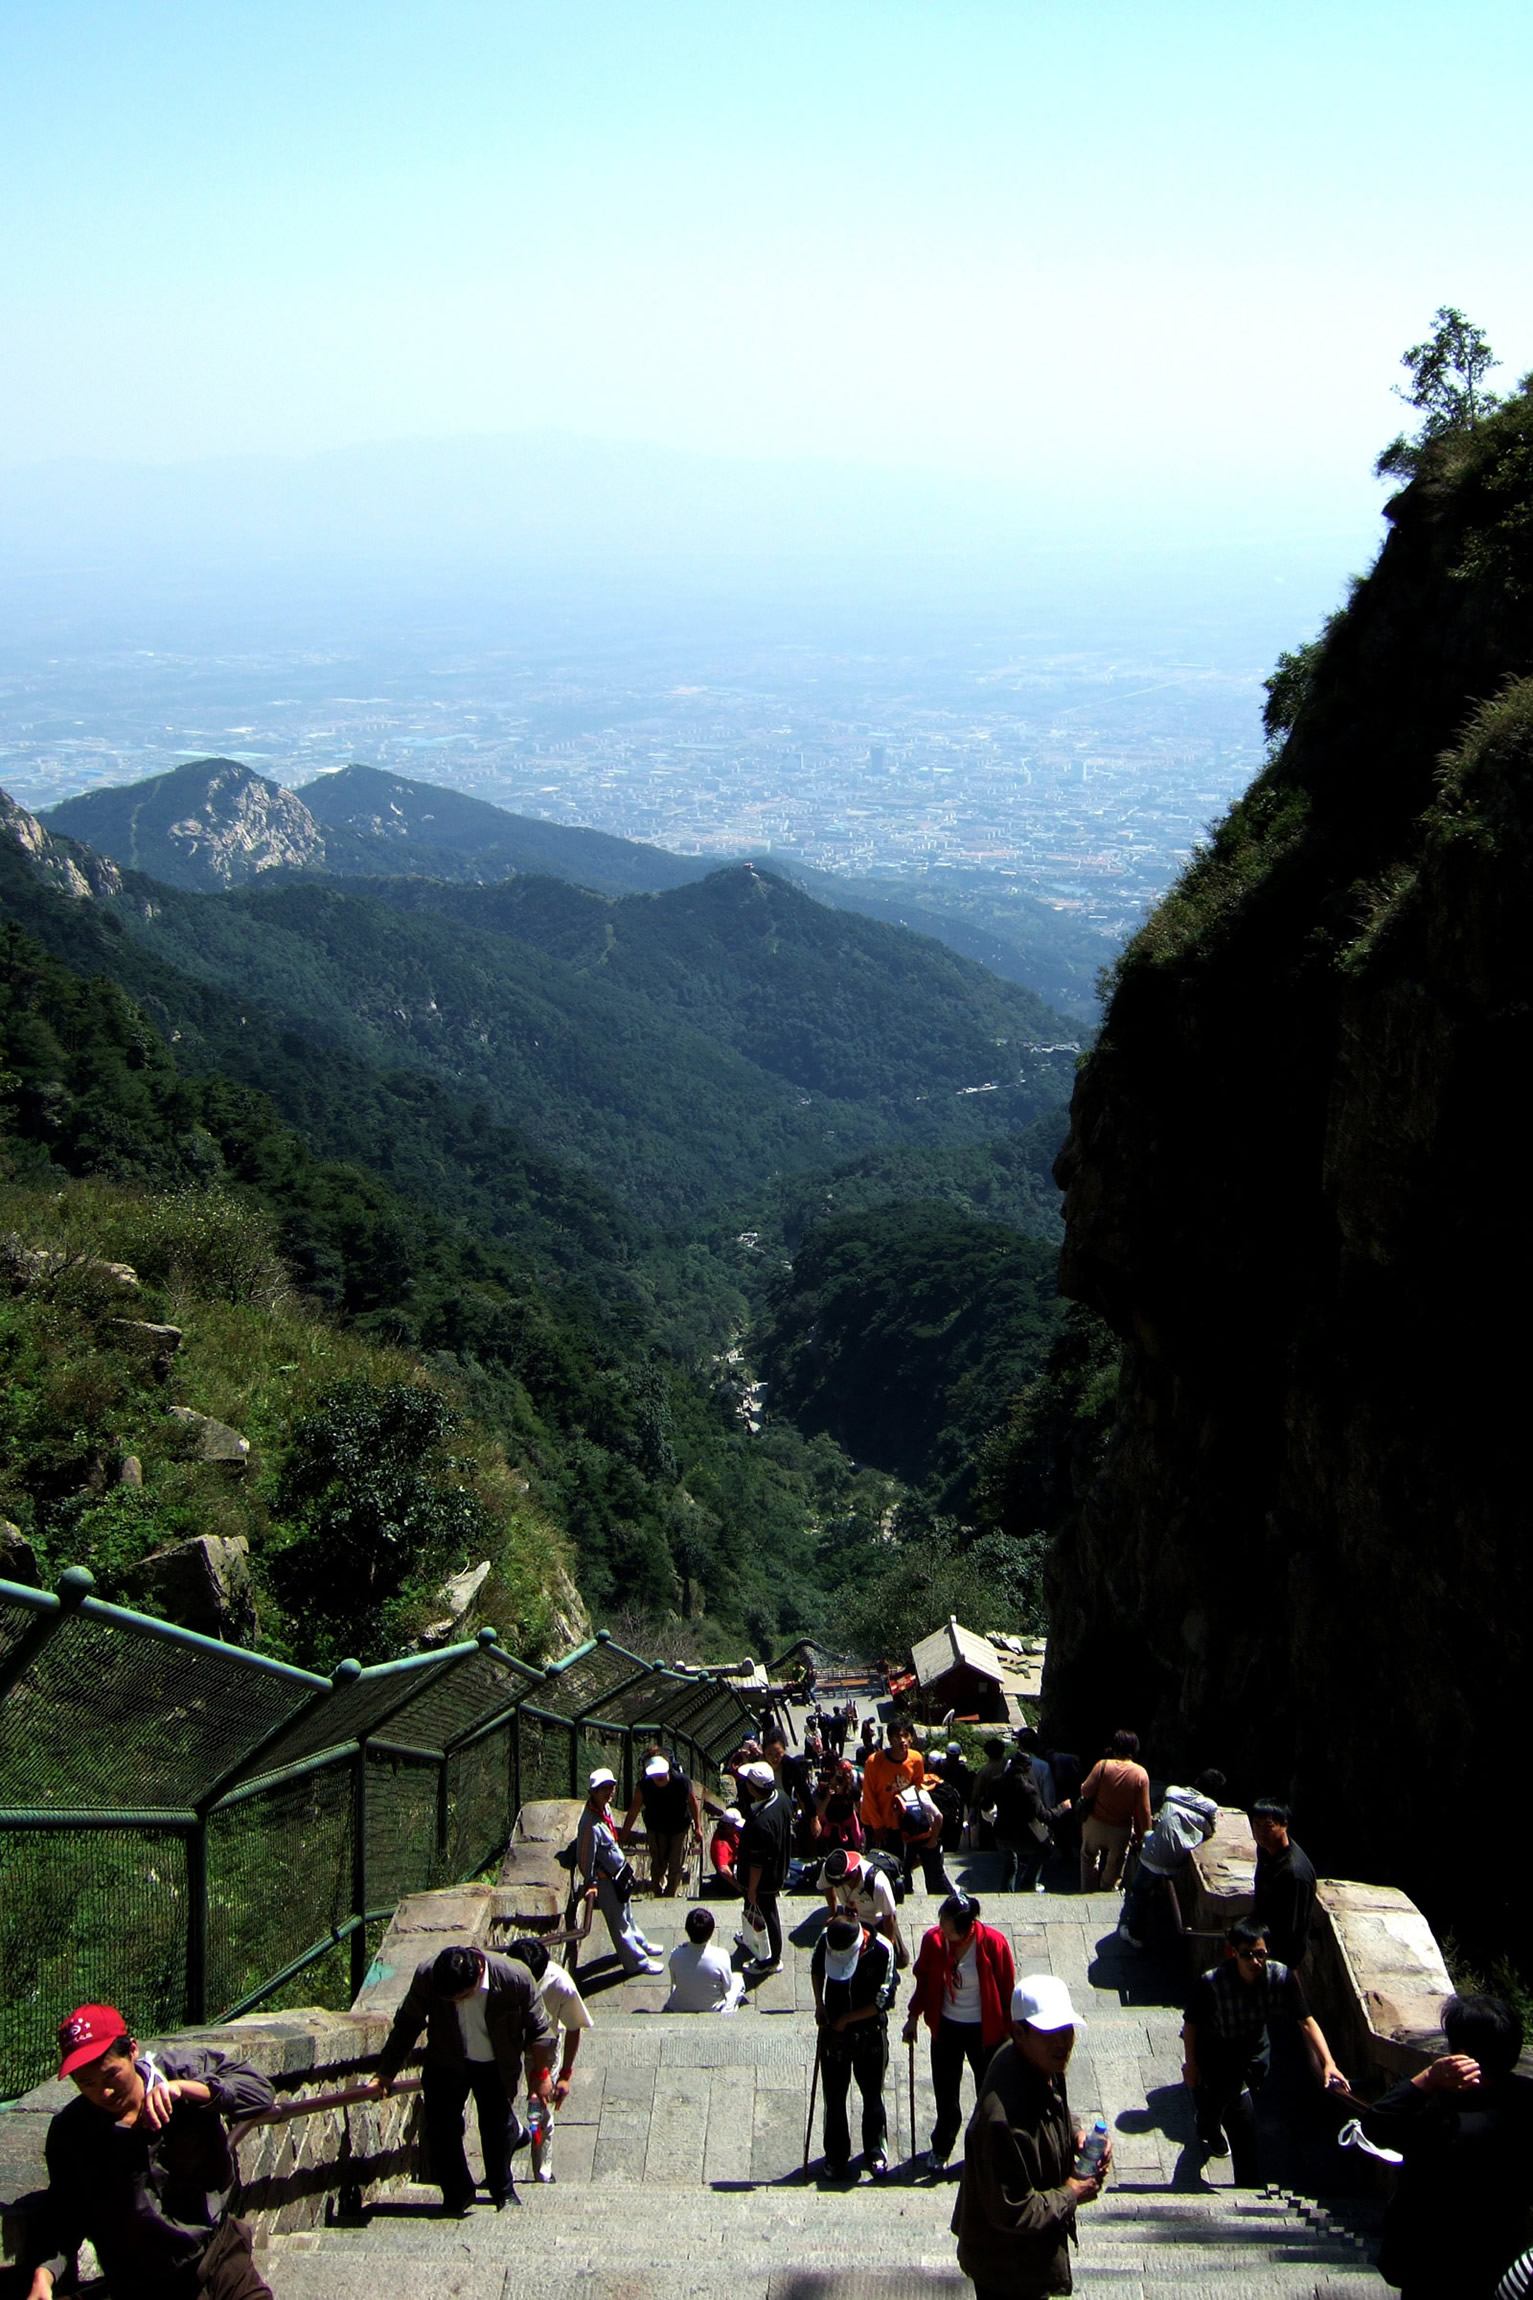 Image 25. Still many steps left [Mount Tai = Tai Shan, Shandong Province, eastern China]. Photo by Charlie fong. (quote from photographer)